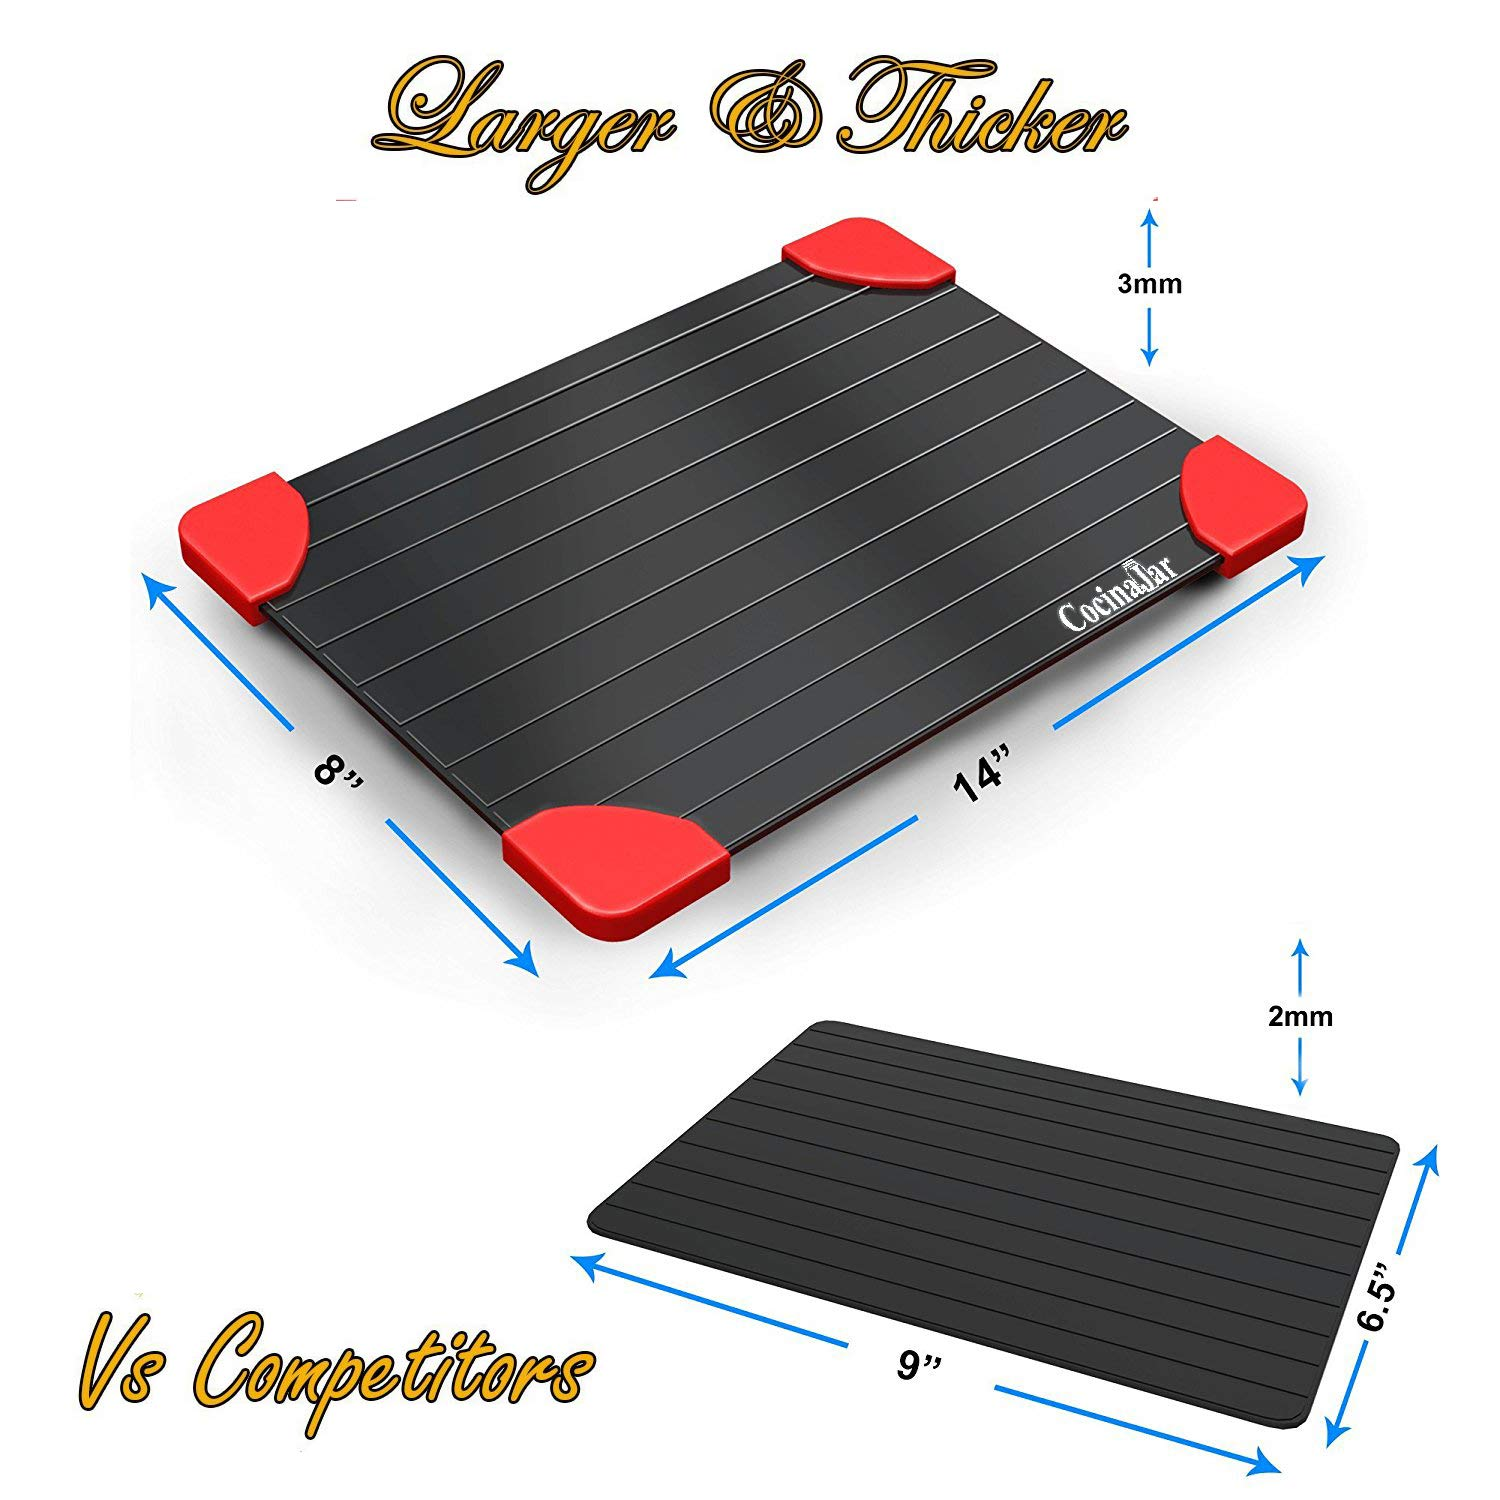 Defrosting Tray - Large Size, Defrost More Meat or Frozen Food Quickly - Thawing Tray with Red Silicone Border - The Safest Way to Defrost Frozen Food - FDA Approved CocinaJar DT-L3